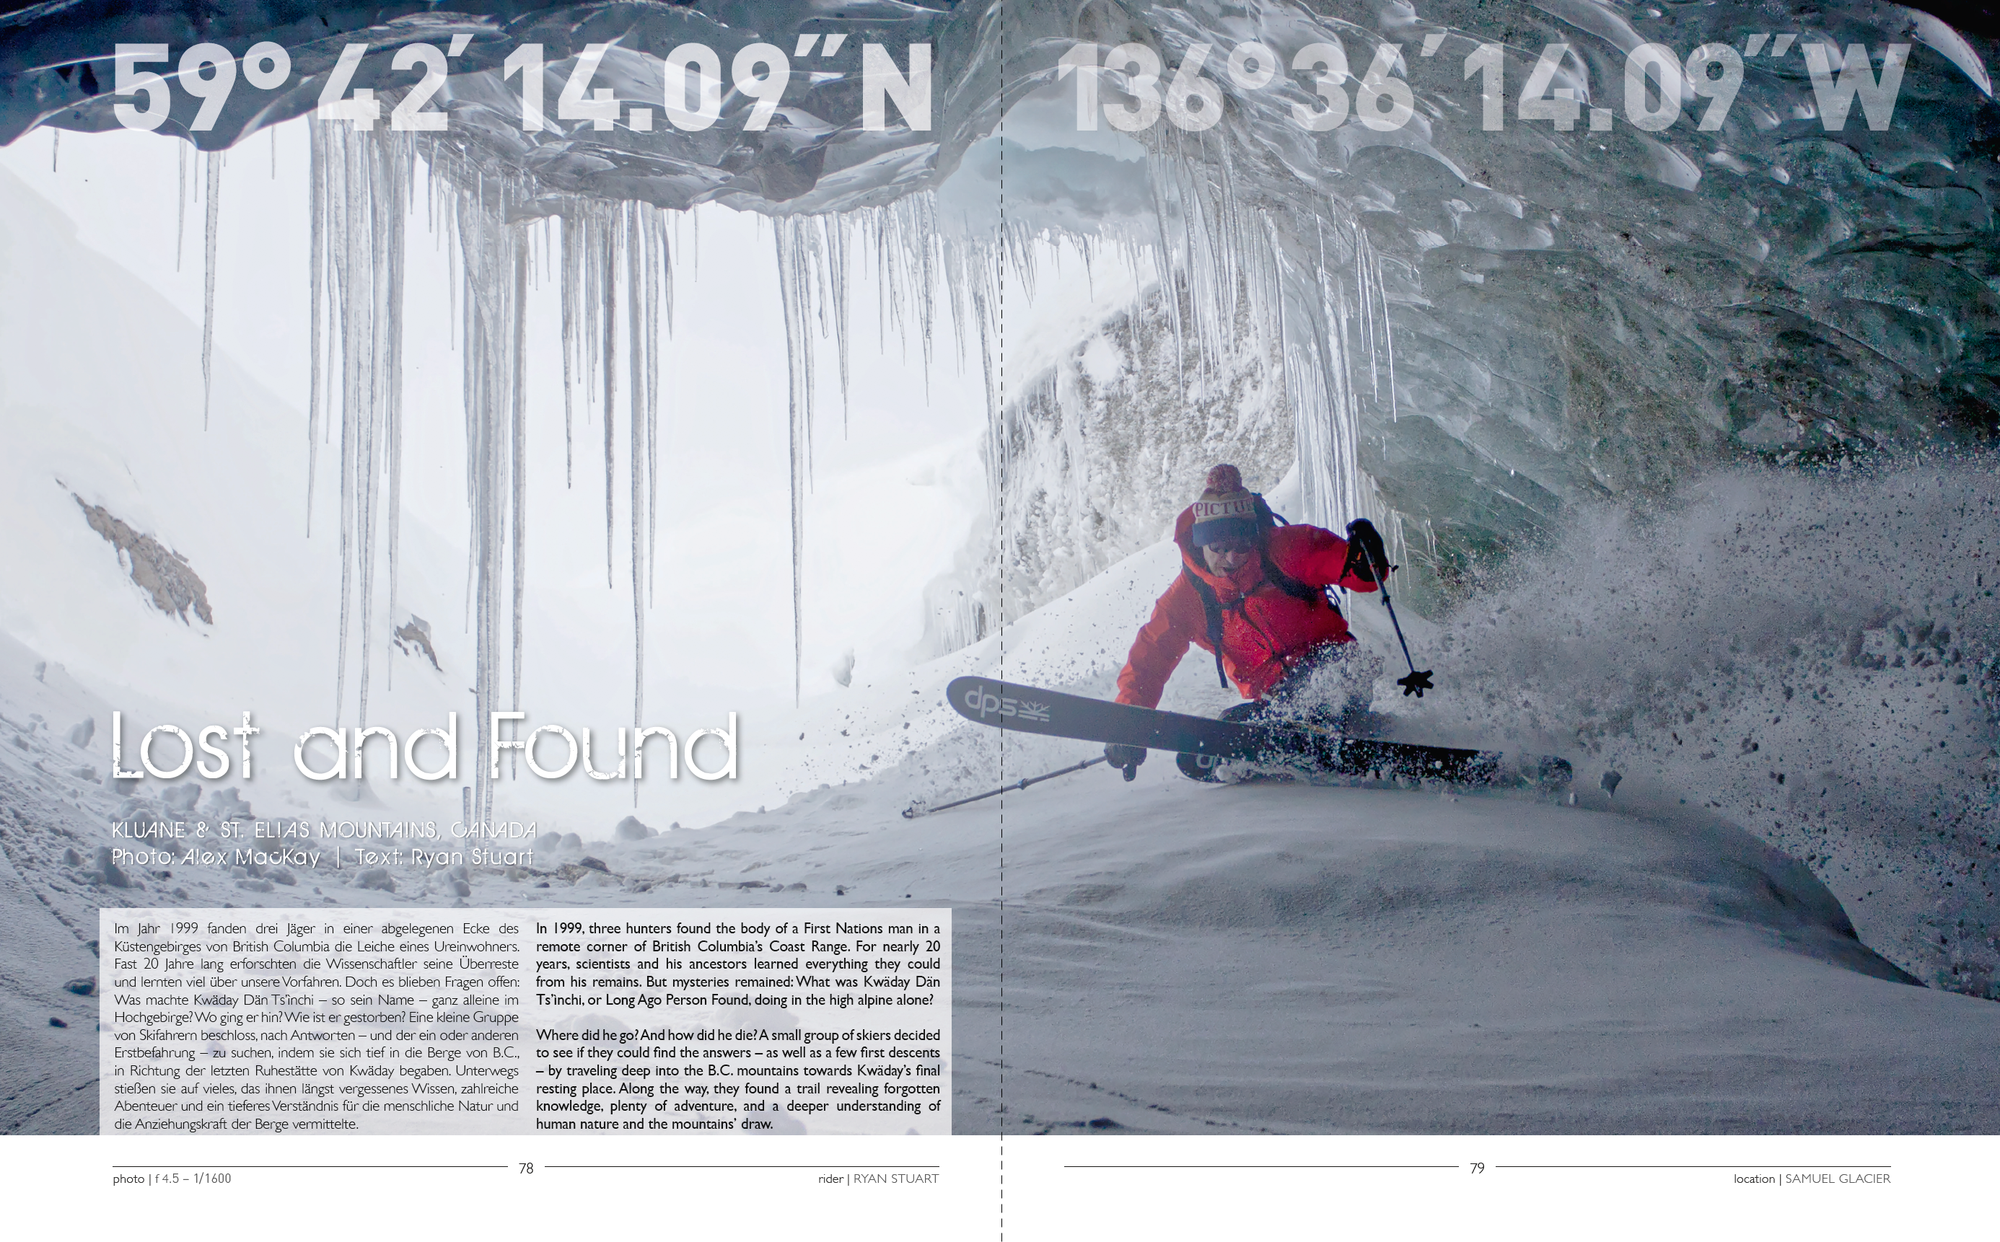 """""""Lost and Found"""" - Backcountry Skiing Story by Alex MacKay and Ryan Stuart"""